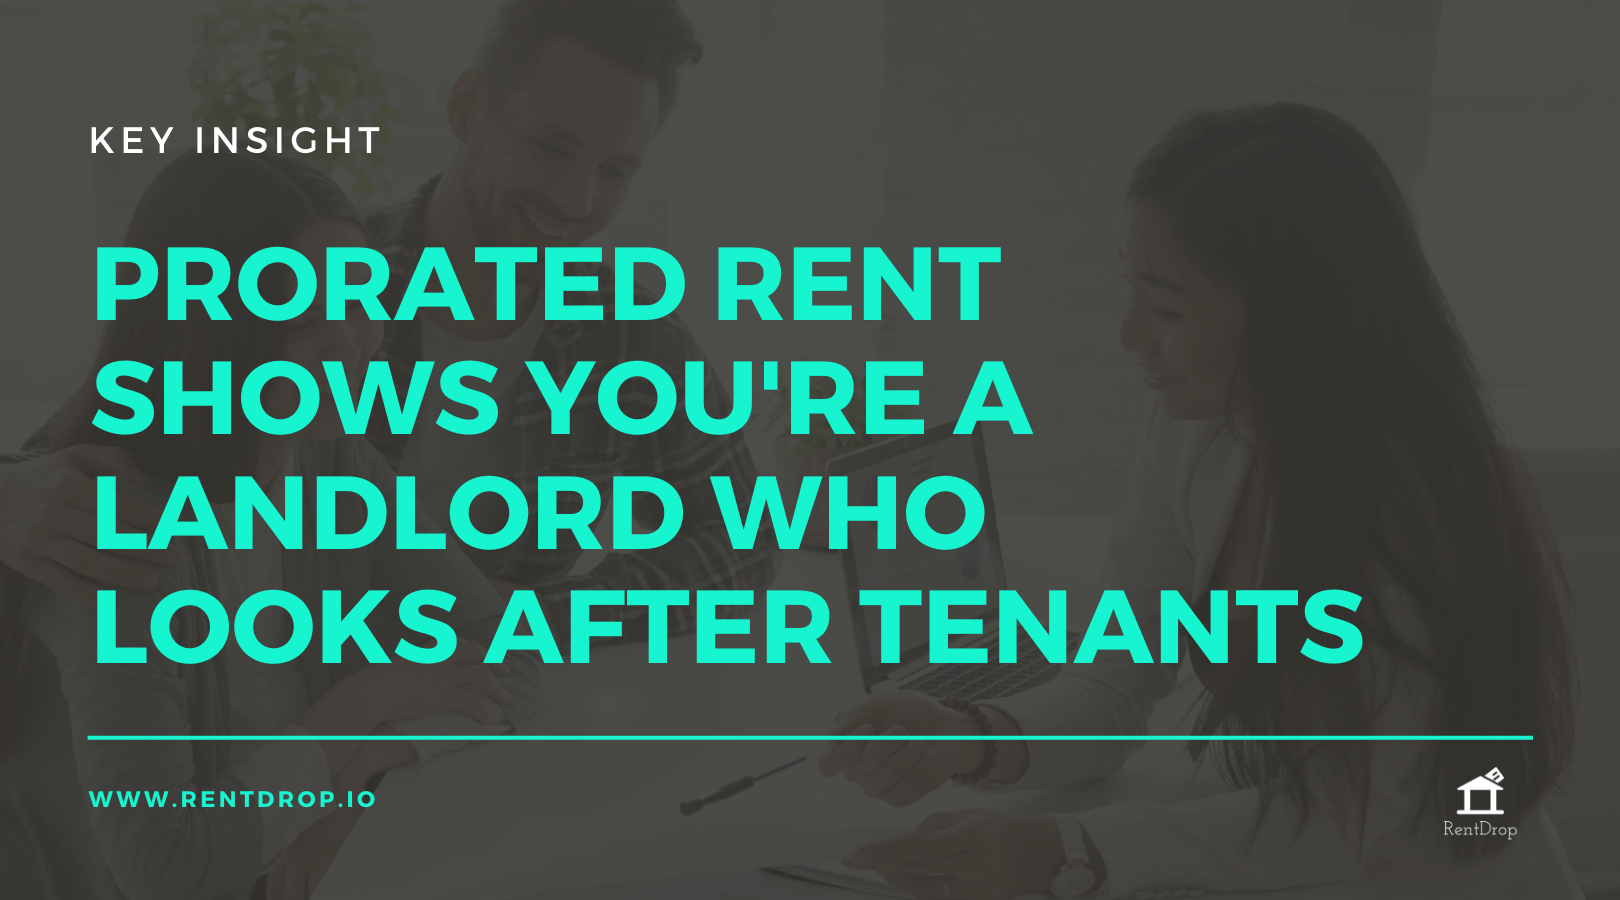 Prorated rent calculating